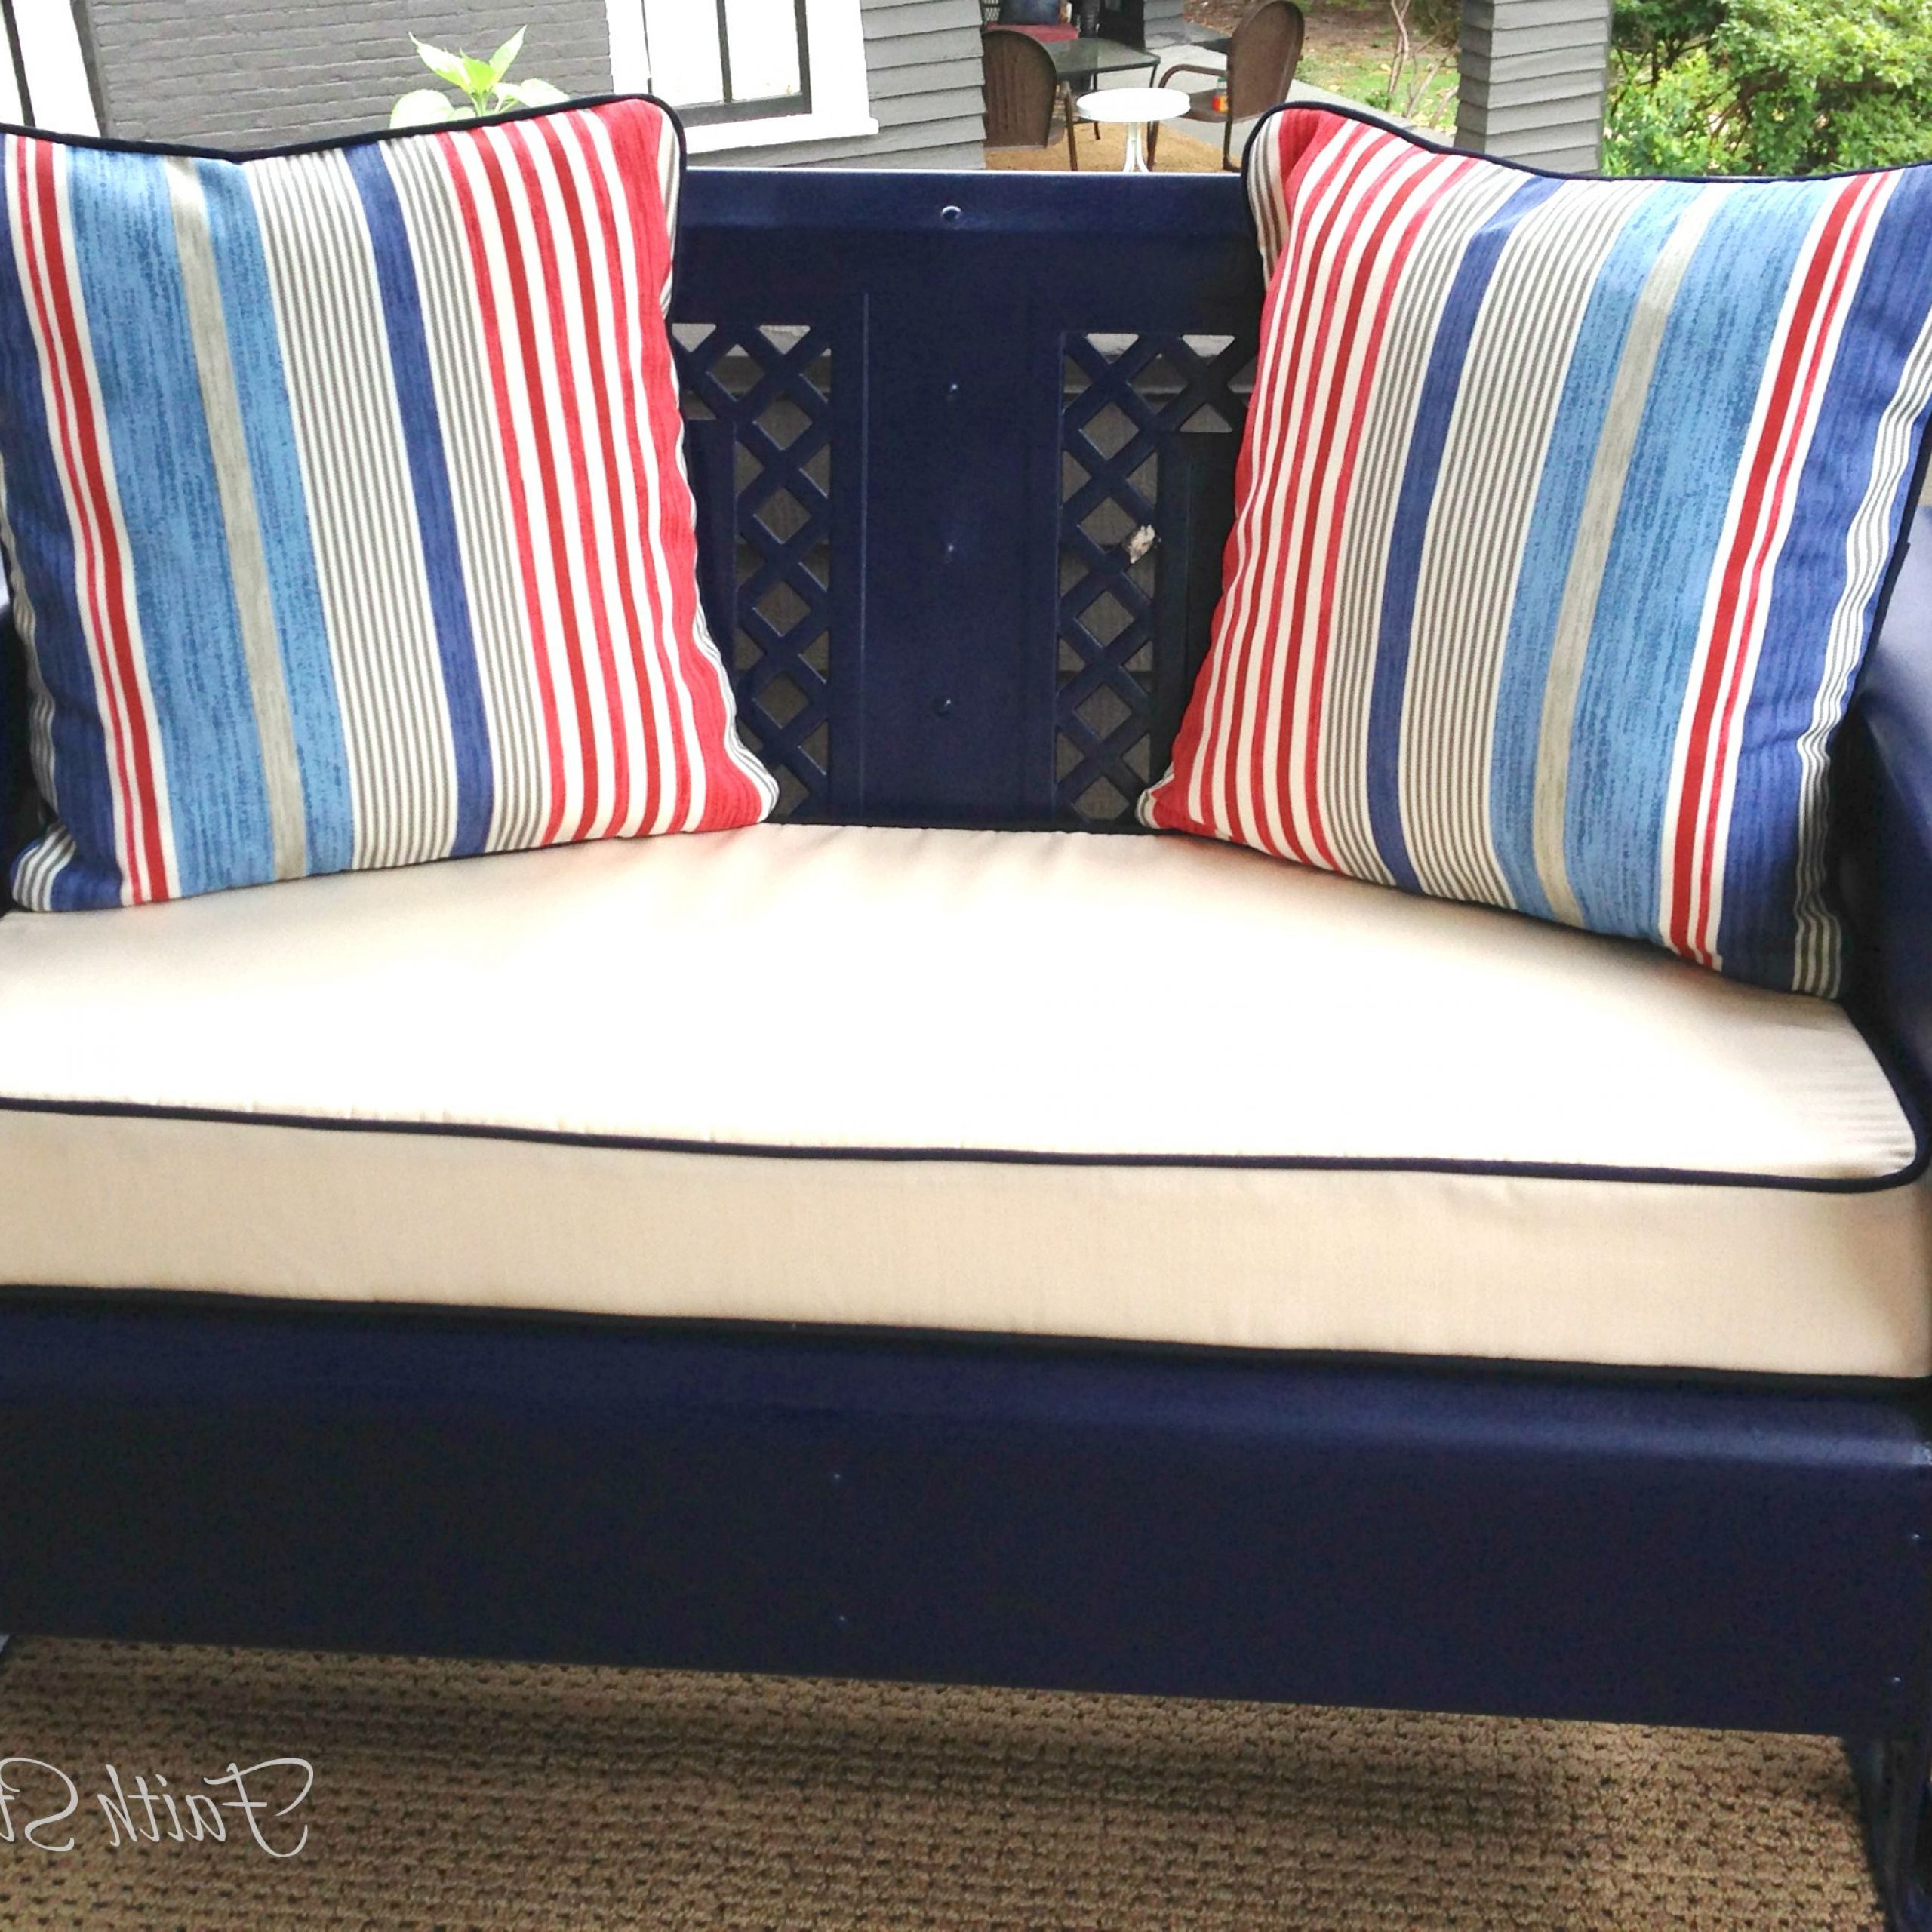 Aluminum Glider Benches With Cushion With Recent Furniture: Vintage Aluminum Porch Glider With Cushions For (View 24 of 30)